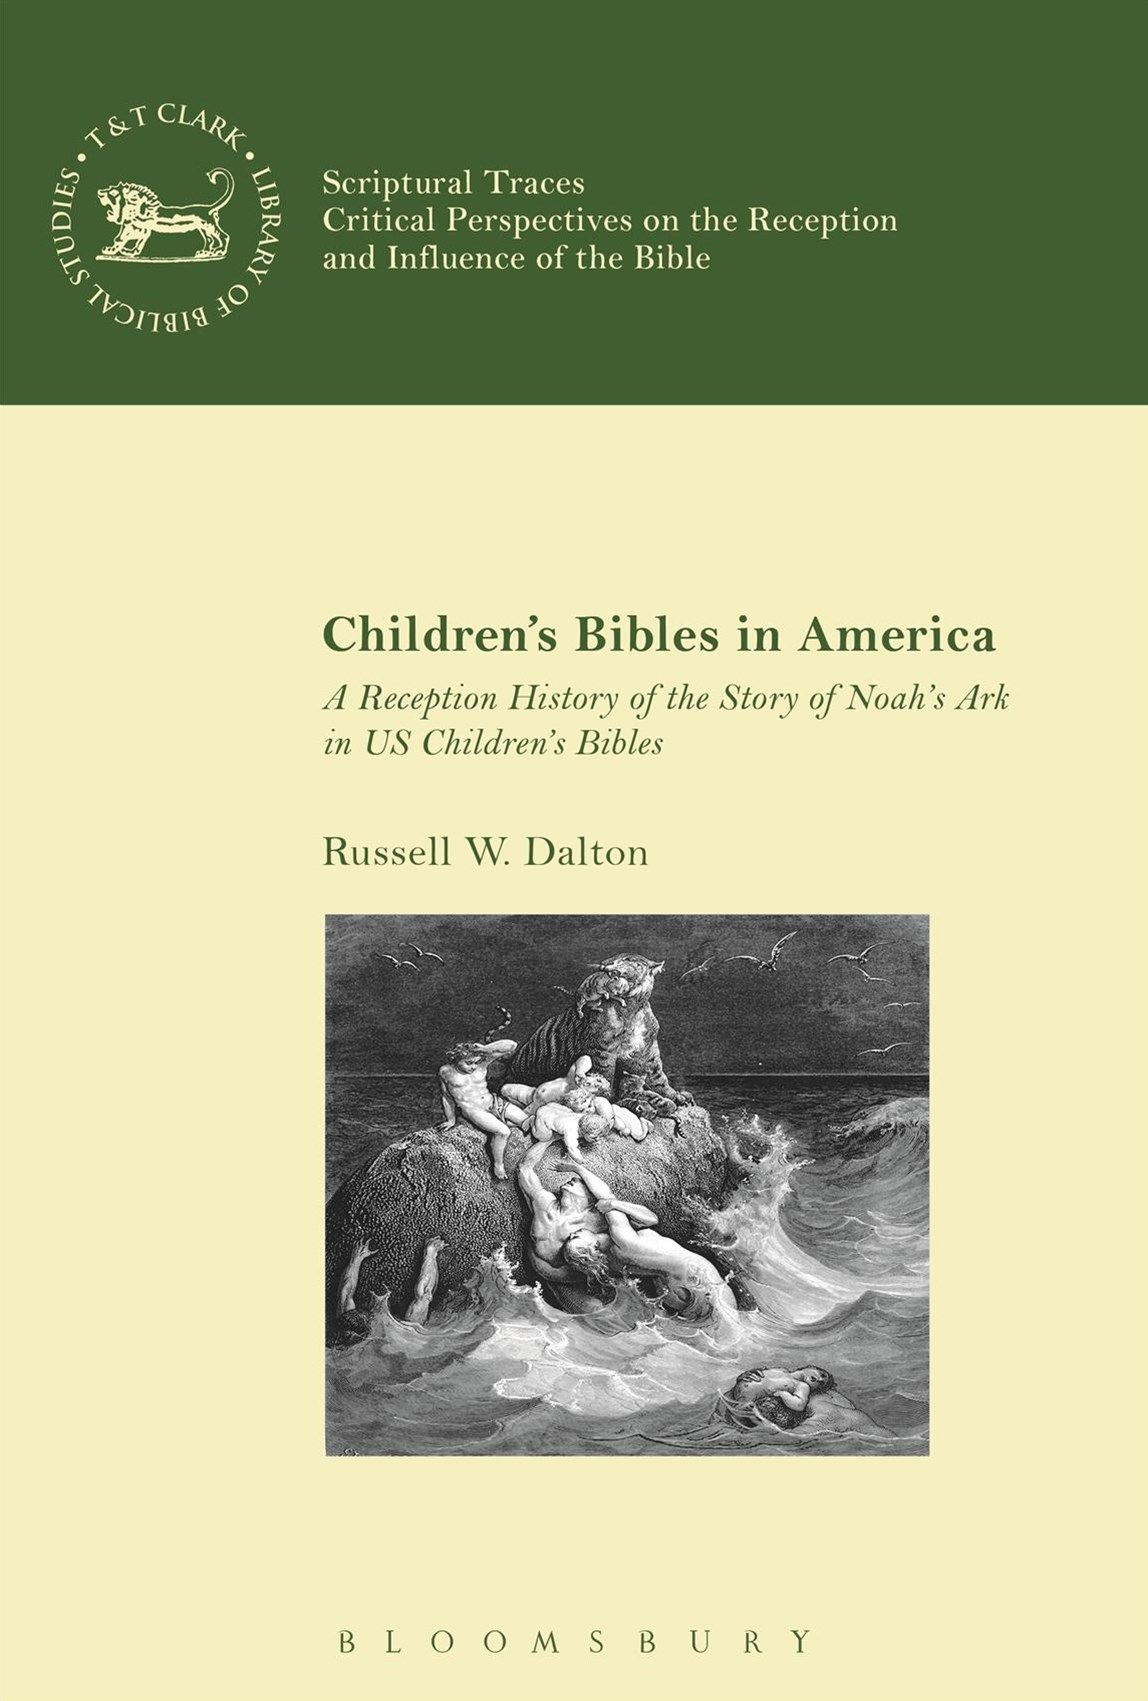 Children's Bibles in America